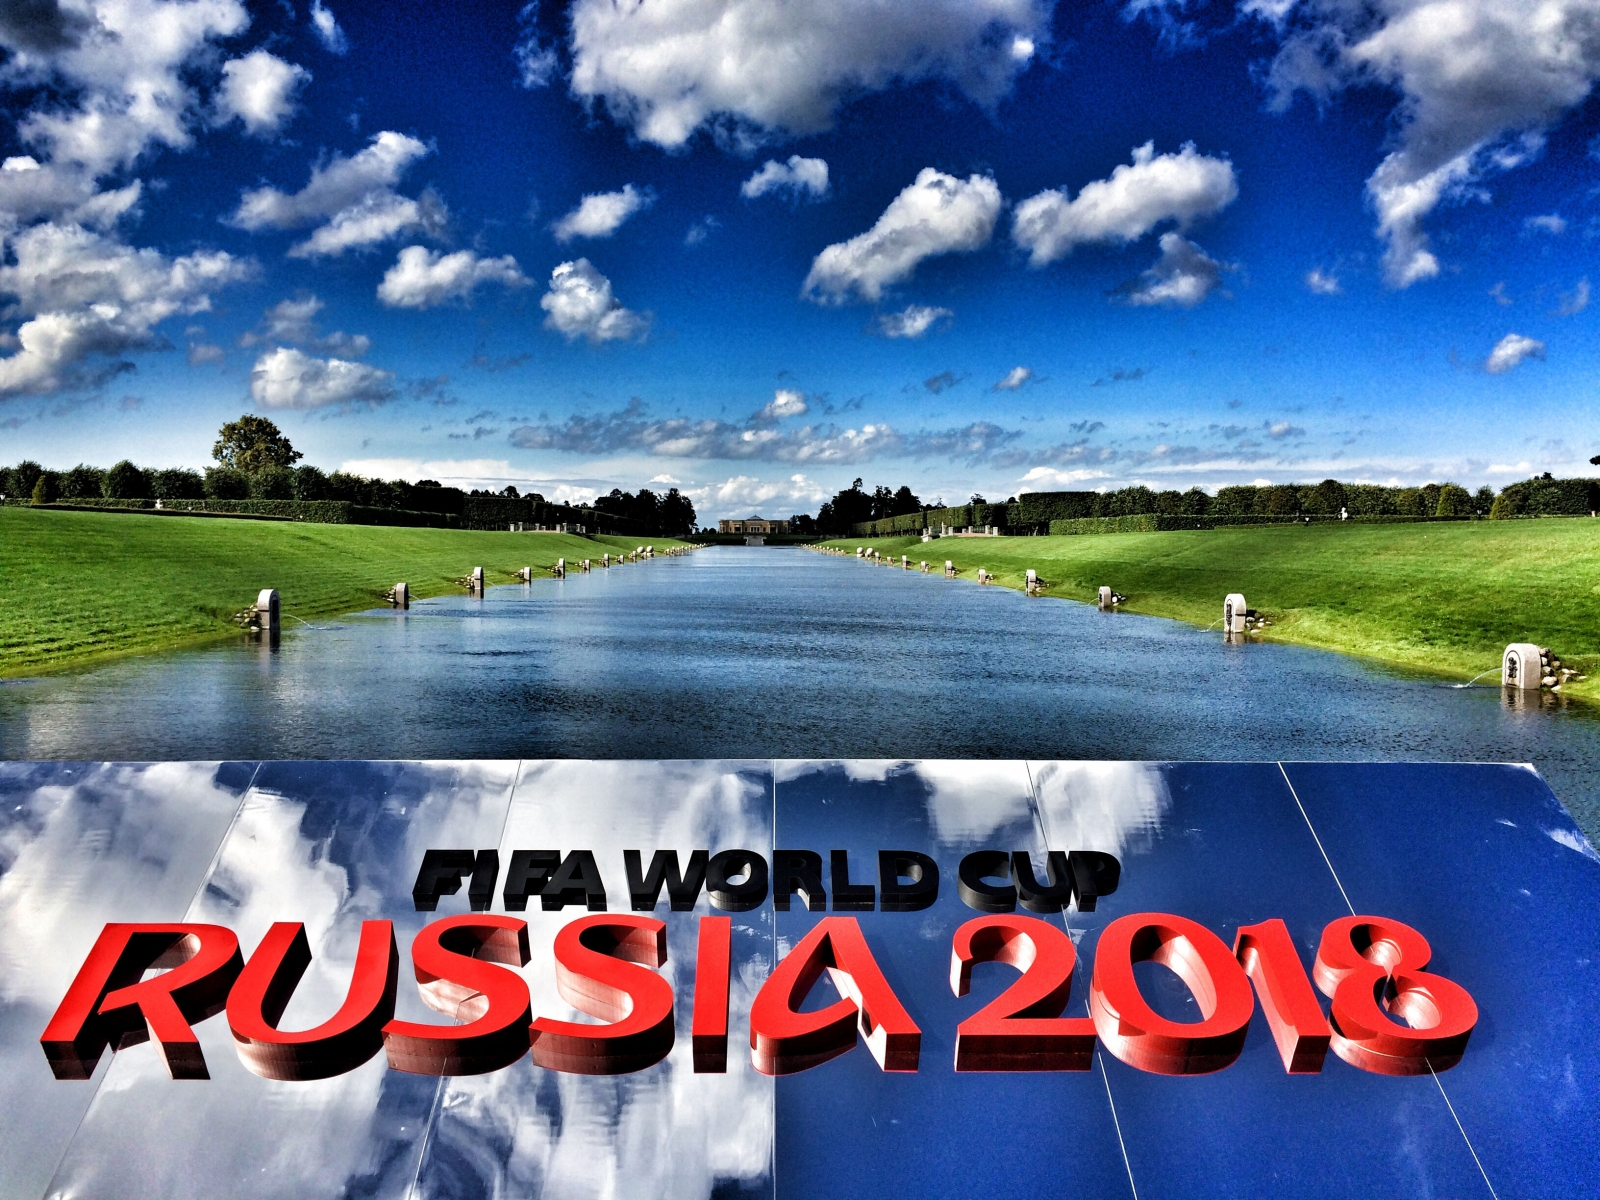 Russia 2018 World Cup qualifying draw